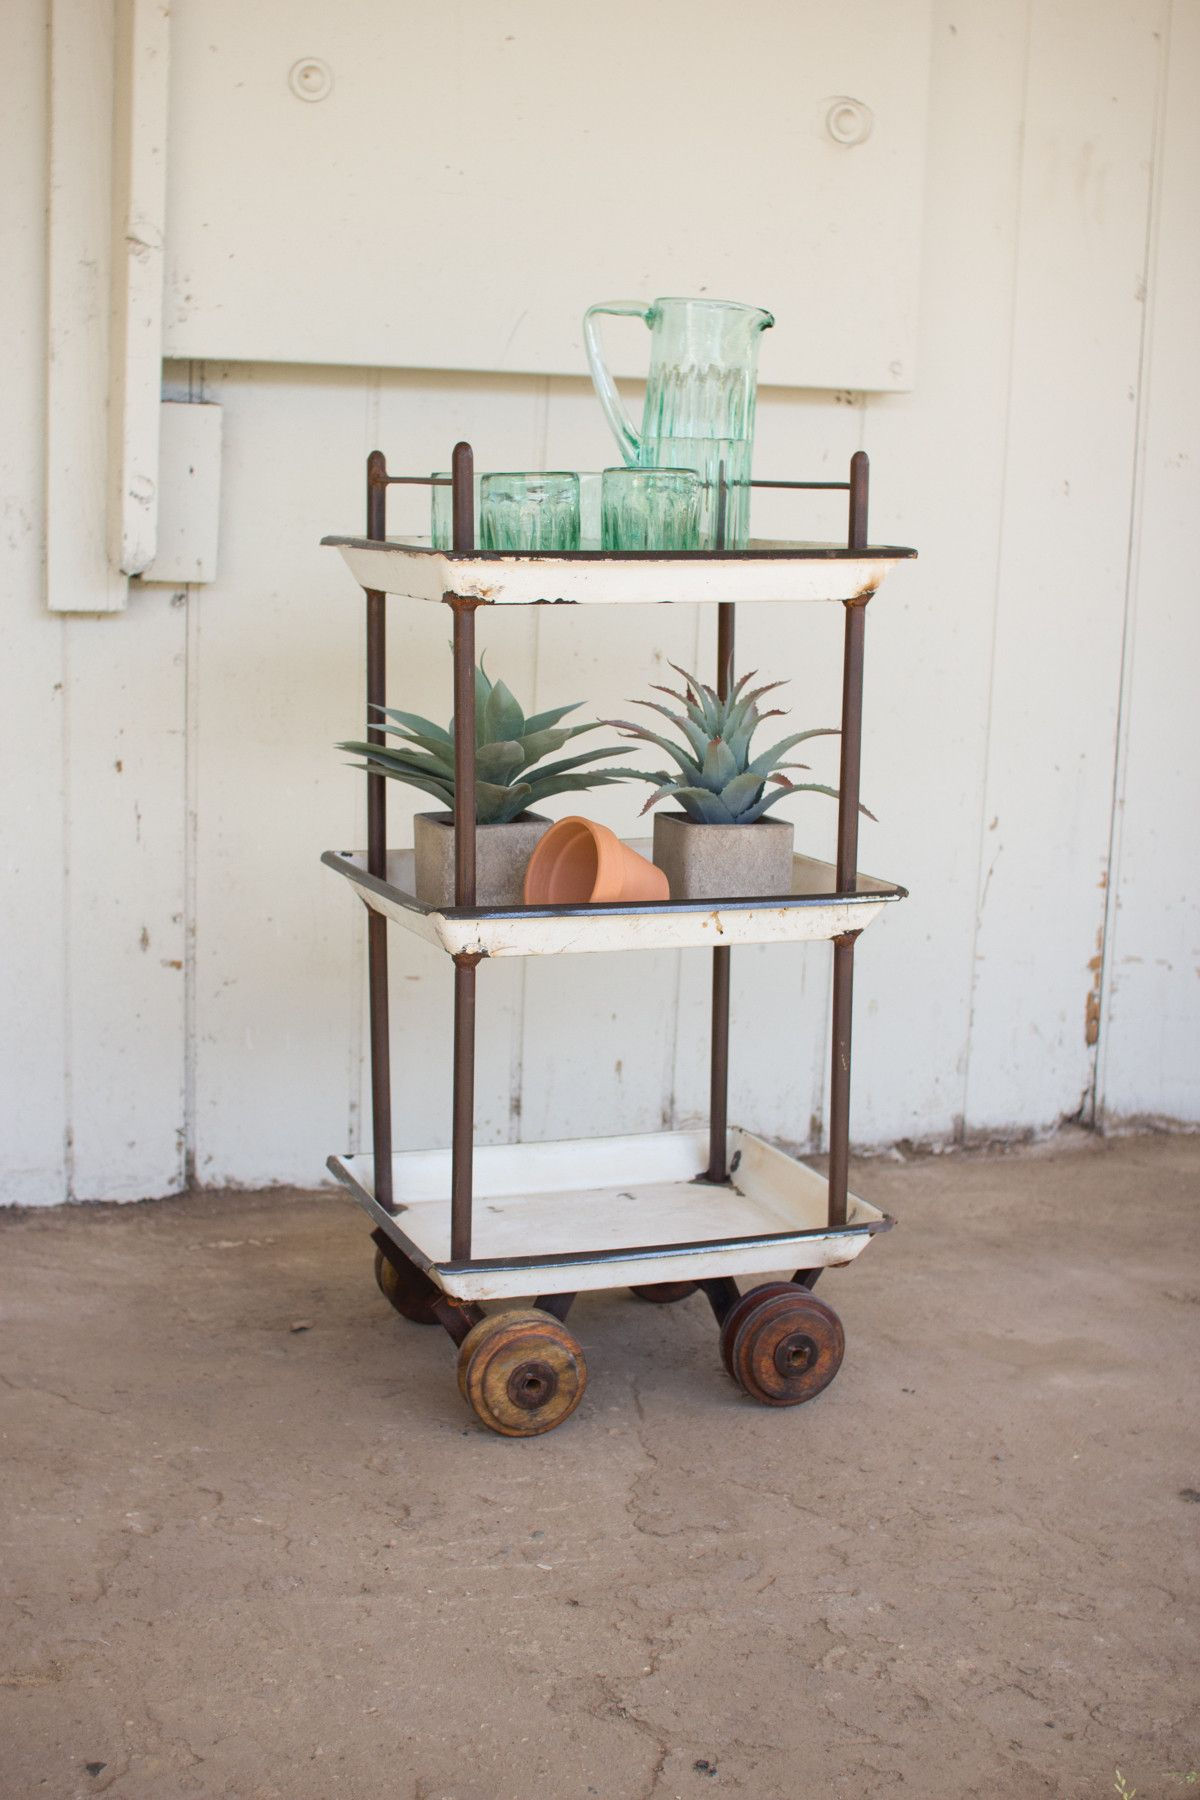 Shop for Recycled Enamel Tray Bar Cart With Wooden Casters